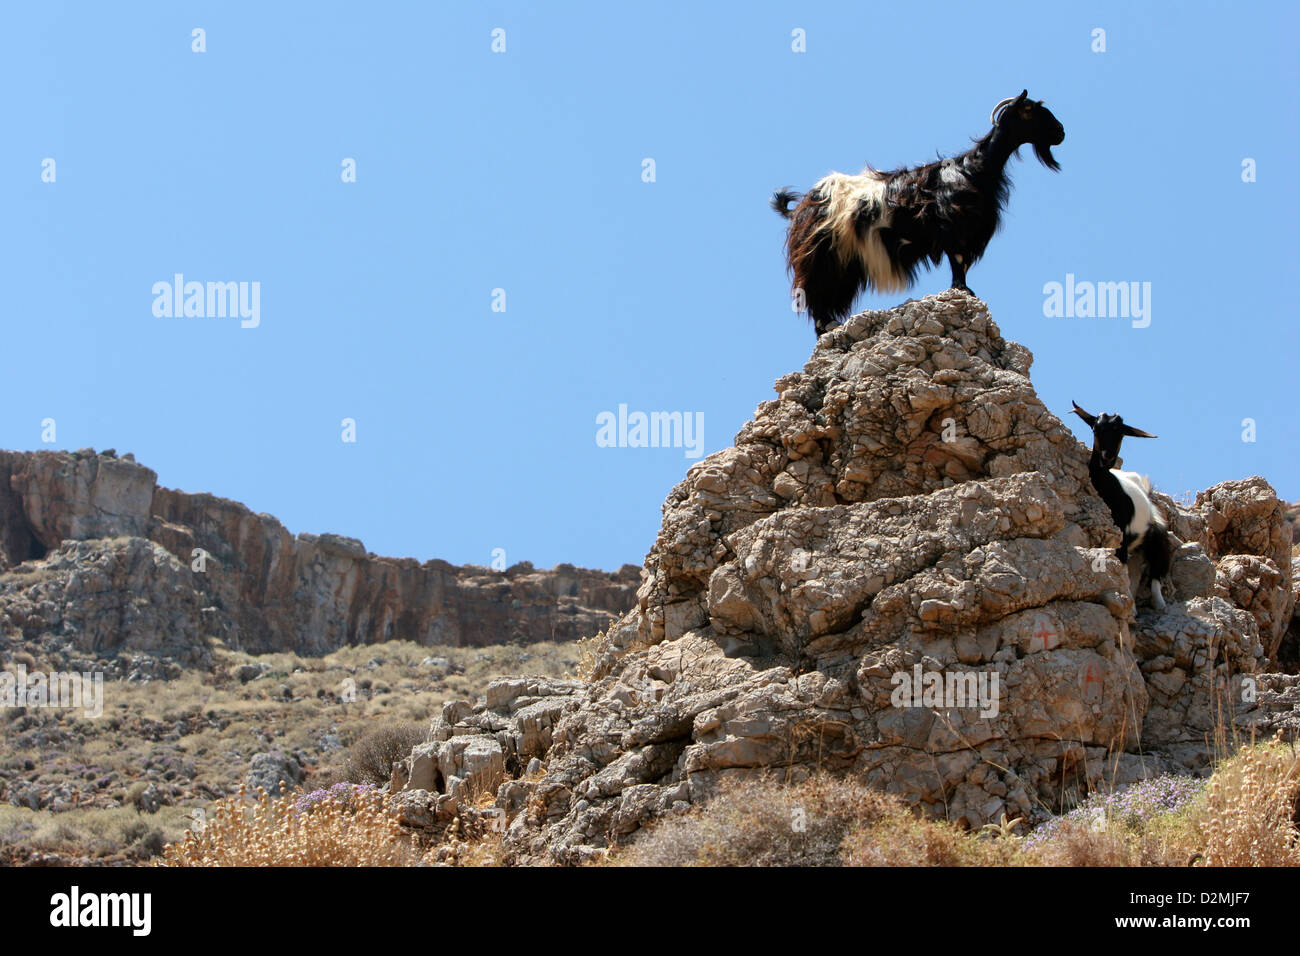 Goldene Uhr Stock Photos Goldene Uhr Stock Images Alamy Guard Mount Stockfotos And Guard Mount Bilder Alamy